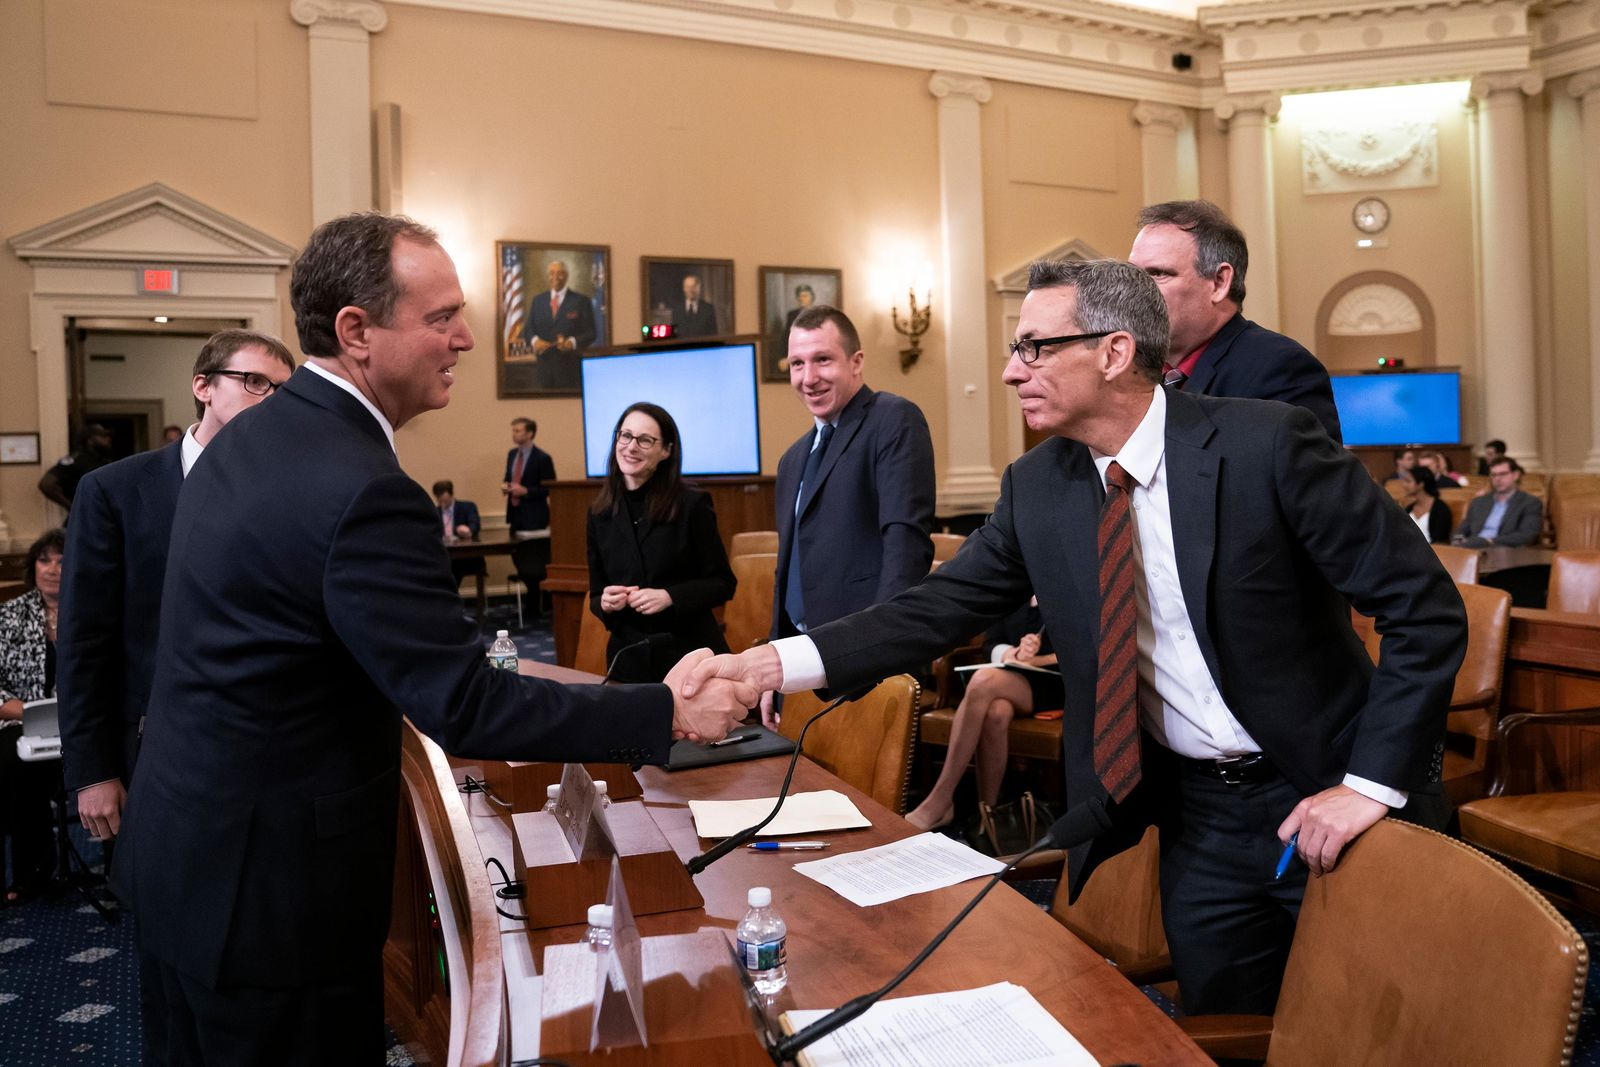 House Intelligence Committee Chairman Adam Schiff, D-Calif., left, greets witness Clint Watts, a cybersecurity and intelligence expert with the Foreign Policy Research Institute, at a hearing on politically motivated fake videos and manipulated media, on Capitol Hill in Washington, Thursday, June 13, 2019. (AP Photo/J. Scott Applewhite)